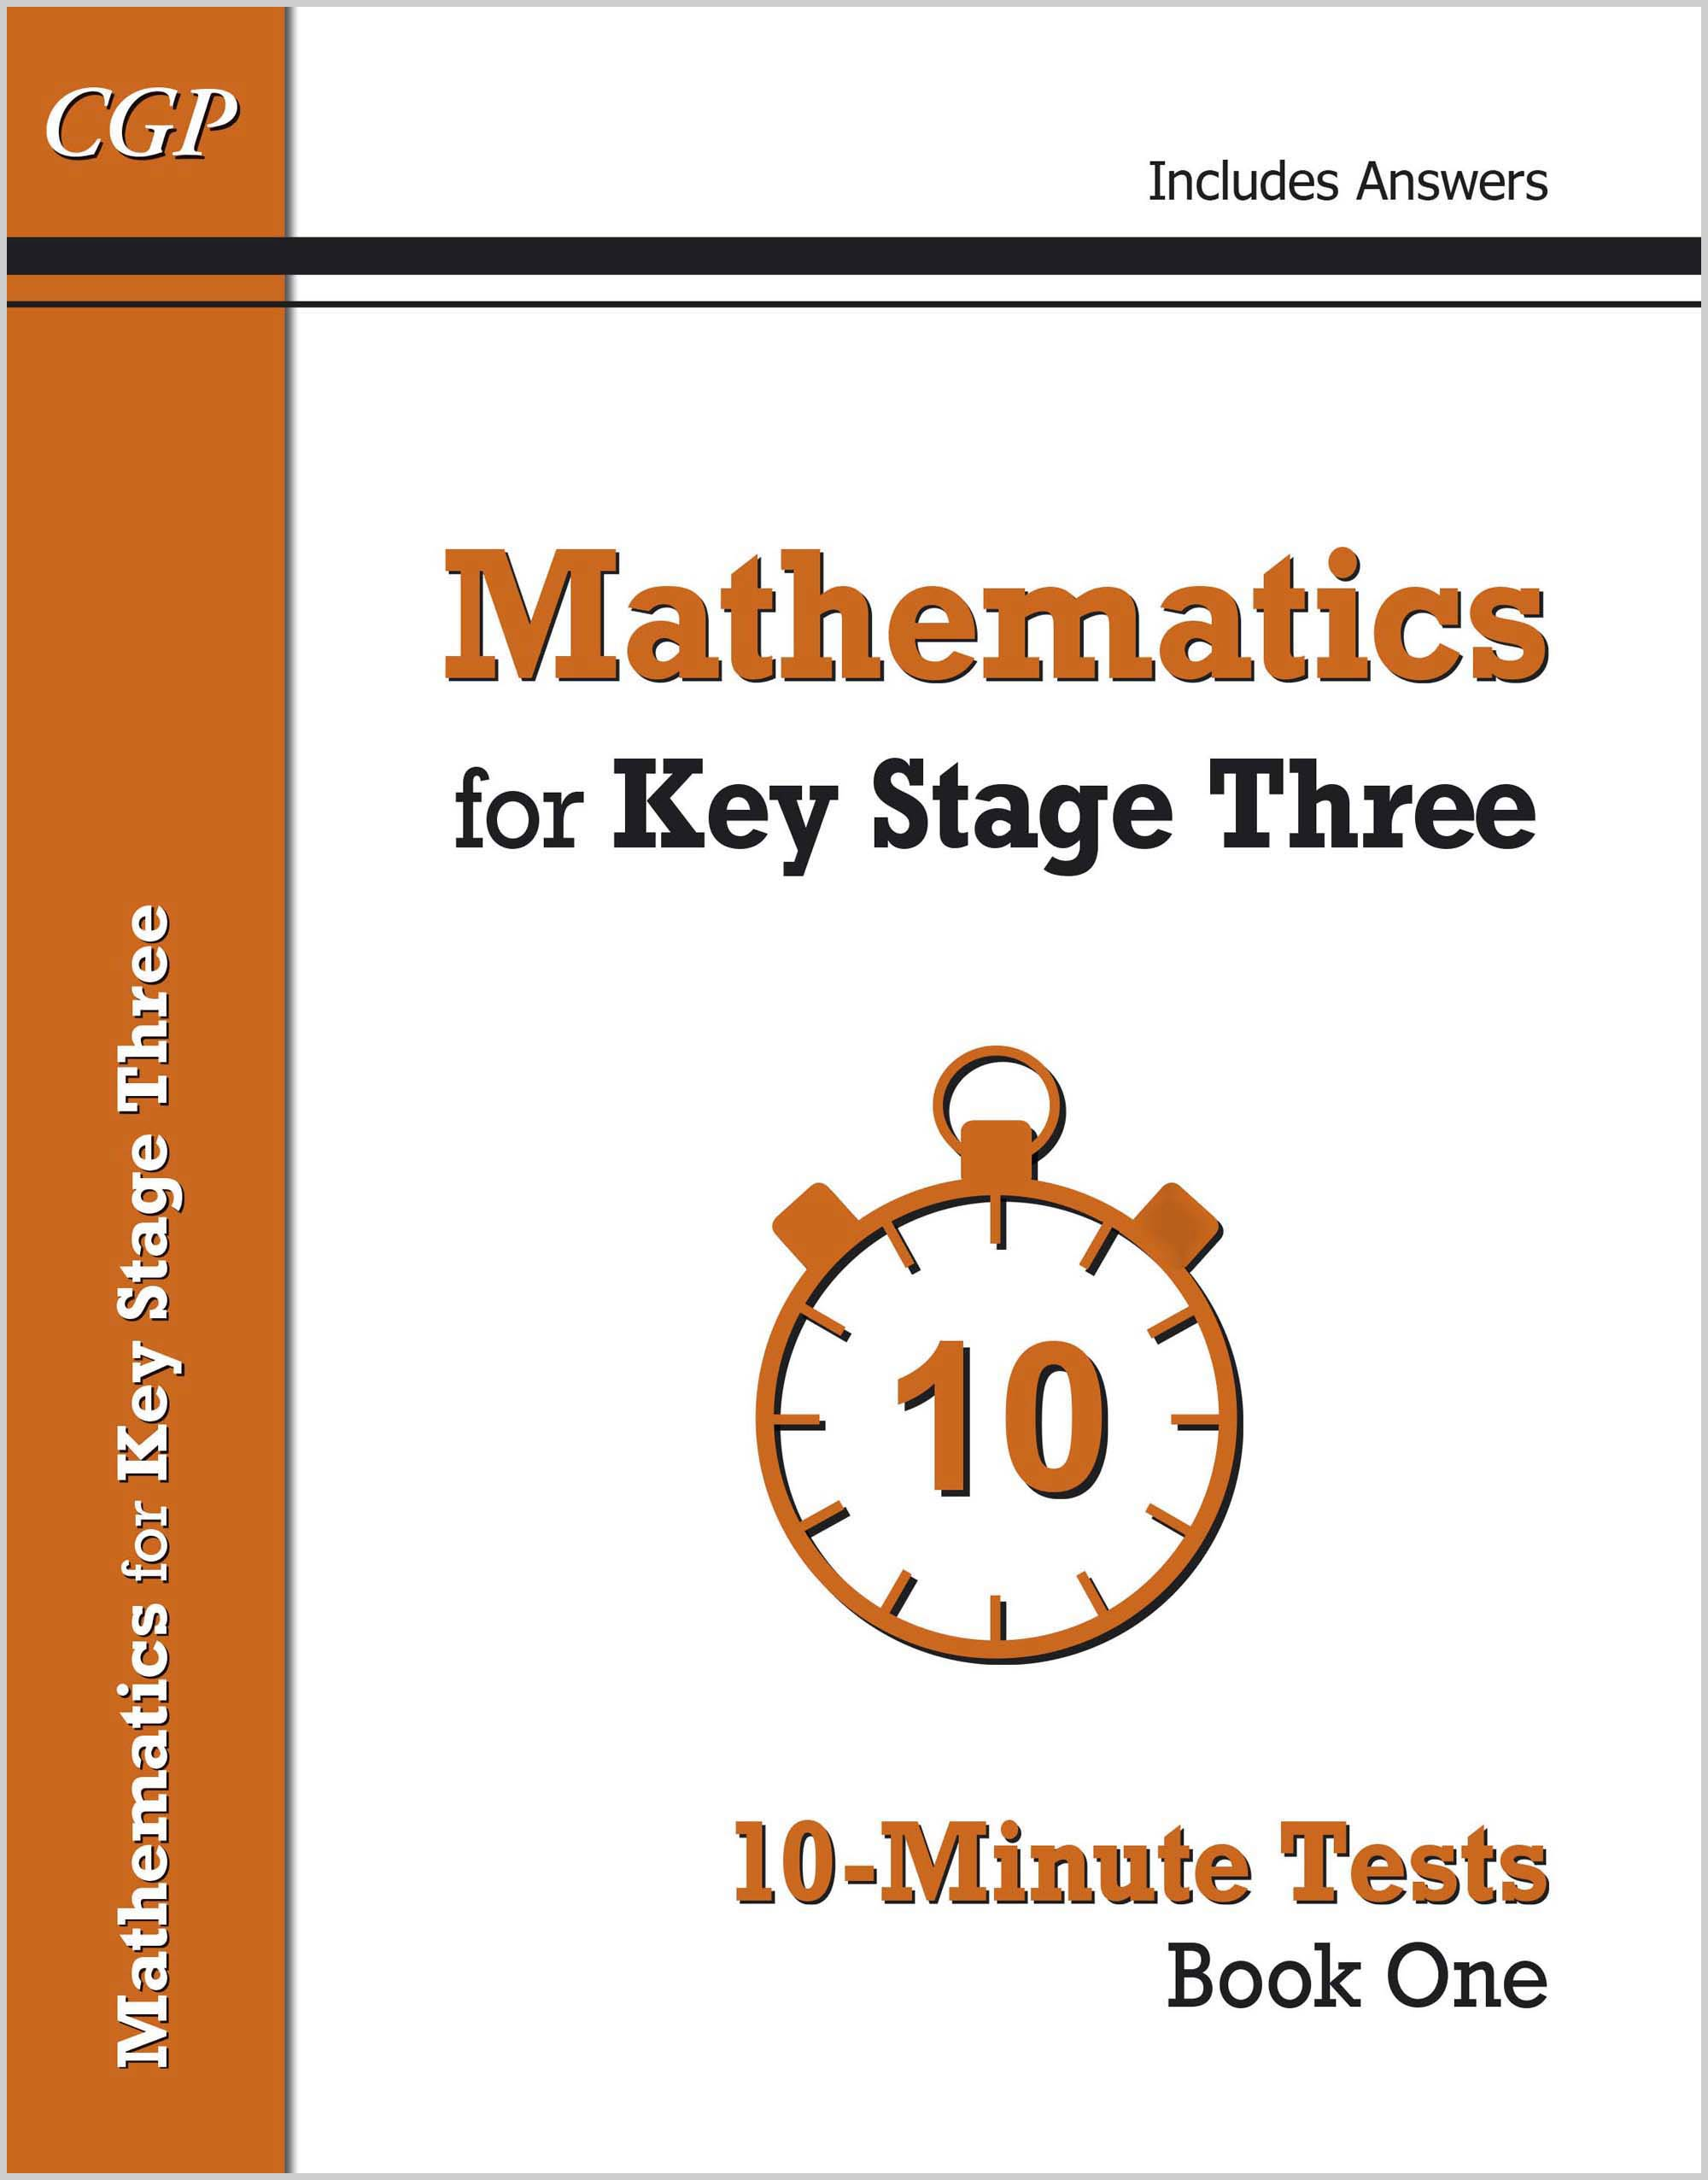 M1XP31DK - Mathematics for KS3: 10-Minute Tests - Book 1 (including Answers)